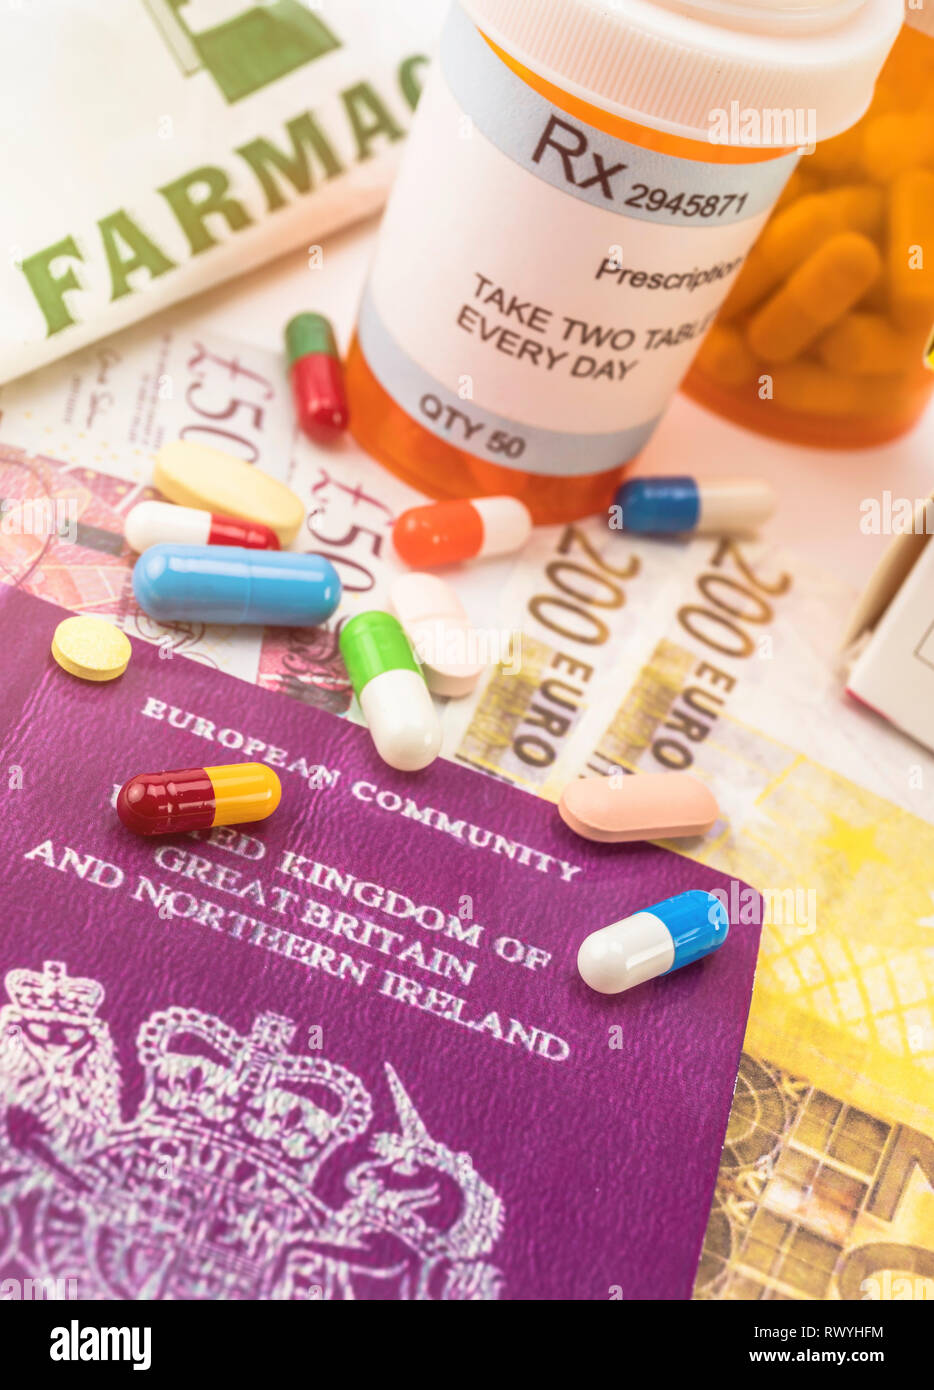 British passport along with several bottles of medicines, concept of medical increase in the crisis of the brexit, conceptual image, horizontal compos - Stock Image